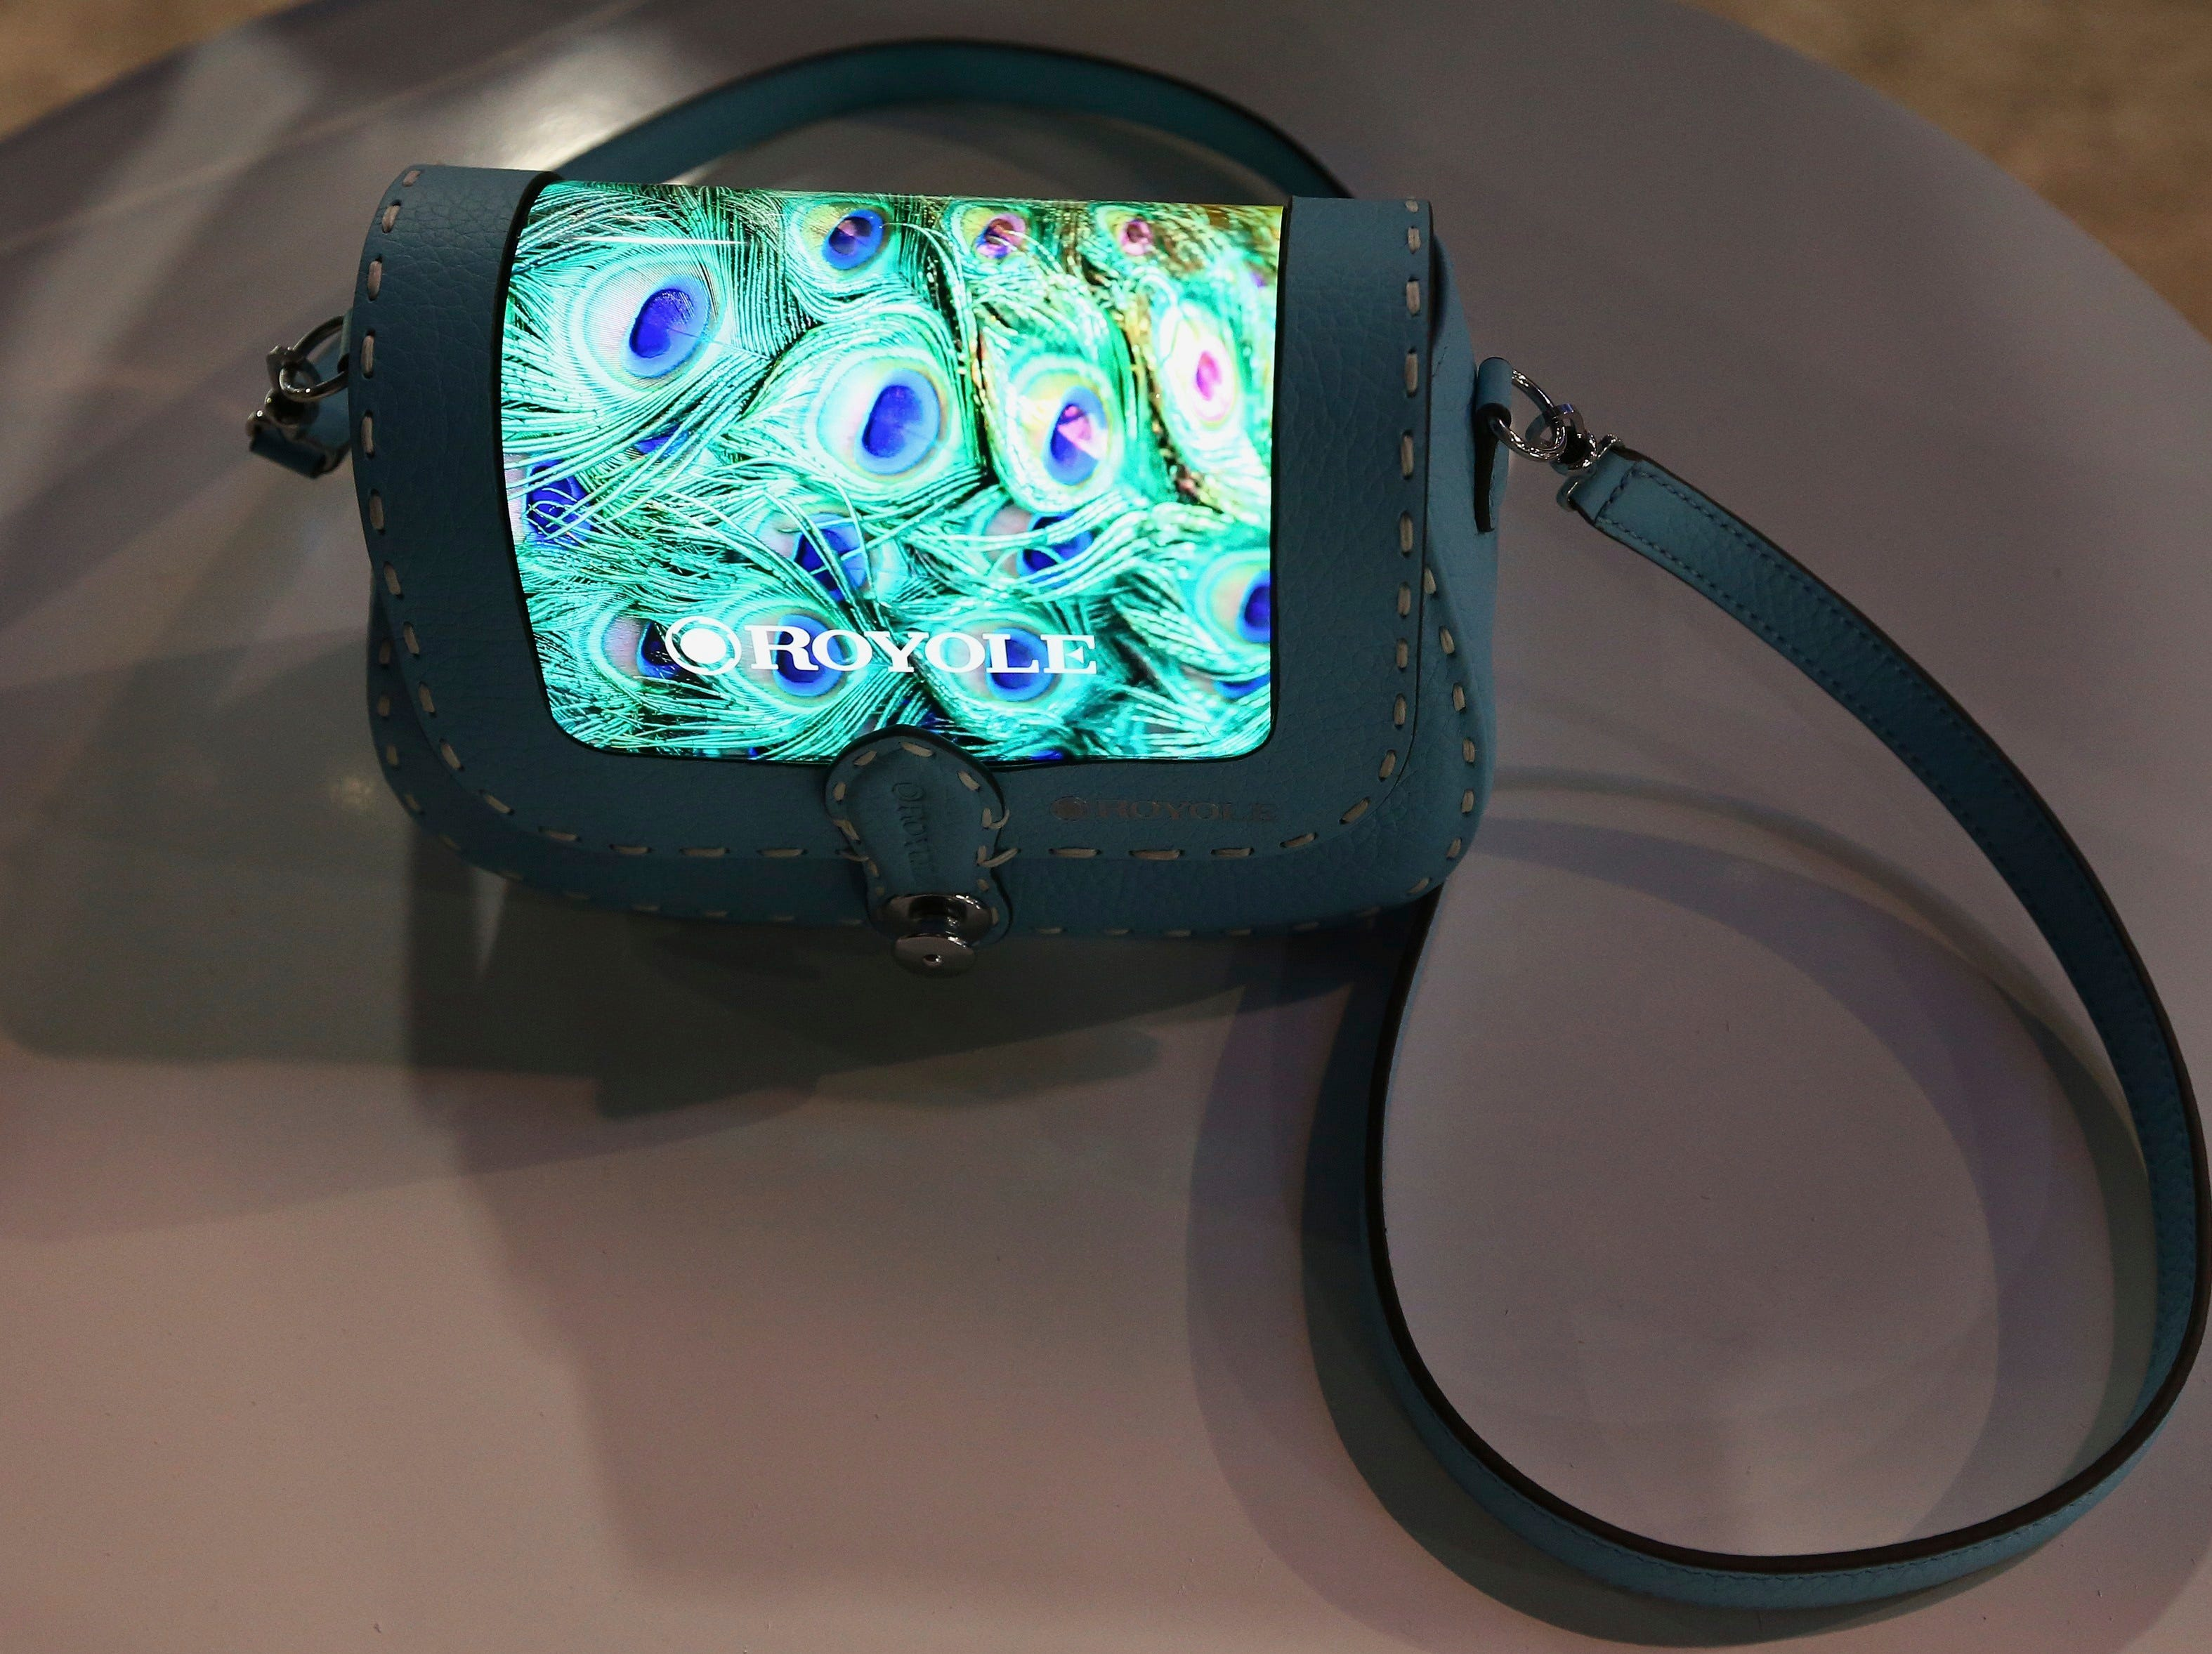 The prototype Royole FlexPai purse with a fully flexible display is shown off at CES International on Tuesday, Jan. 8, 2019, in Las Vegas.